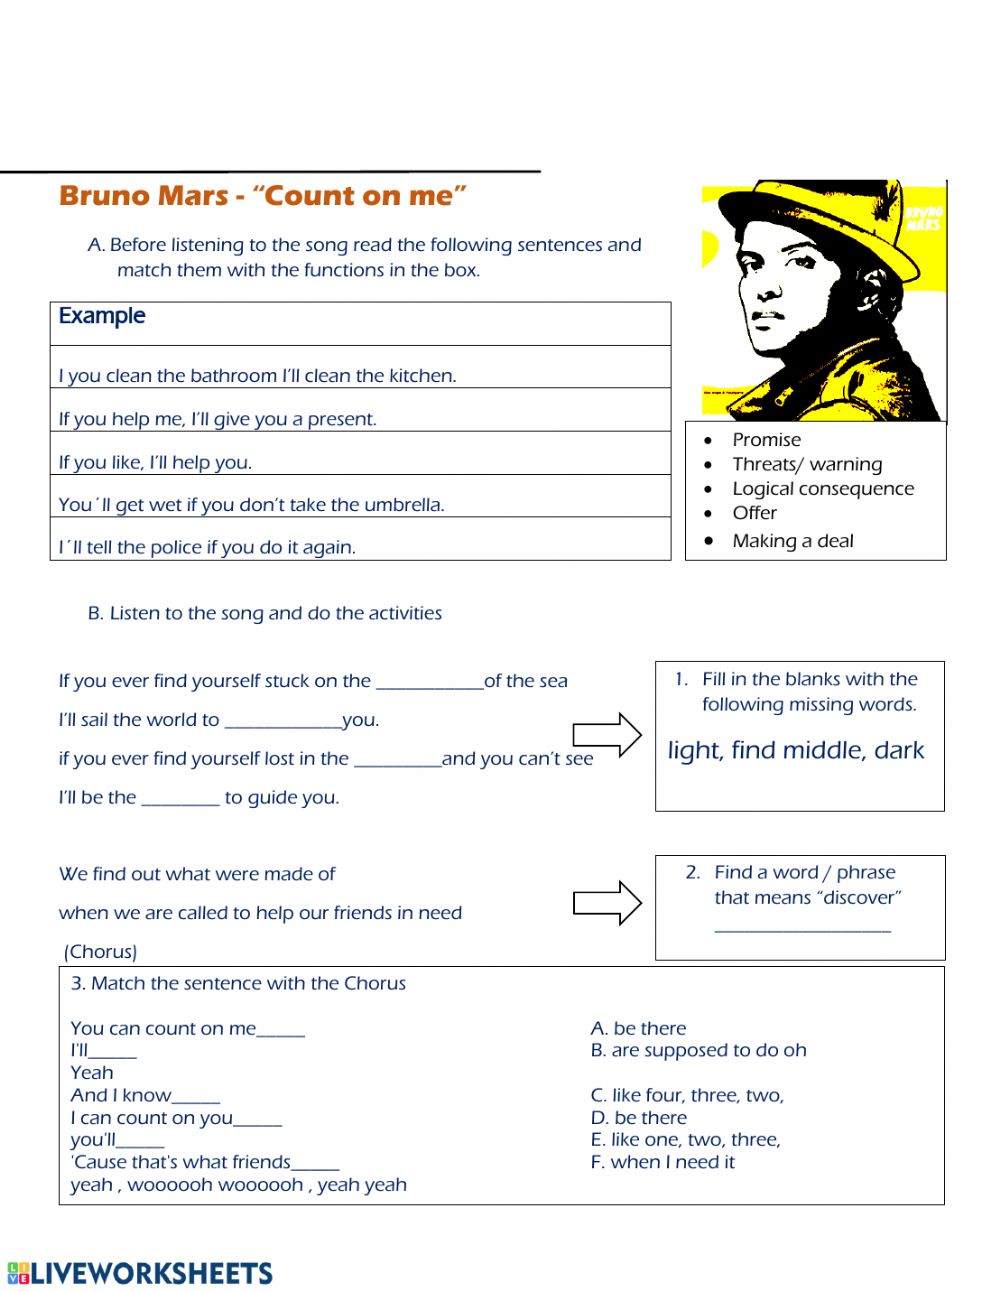 - Listening Song Count On Me Bruno Mars - Interactive Worksheet